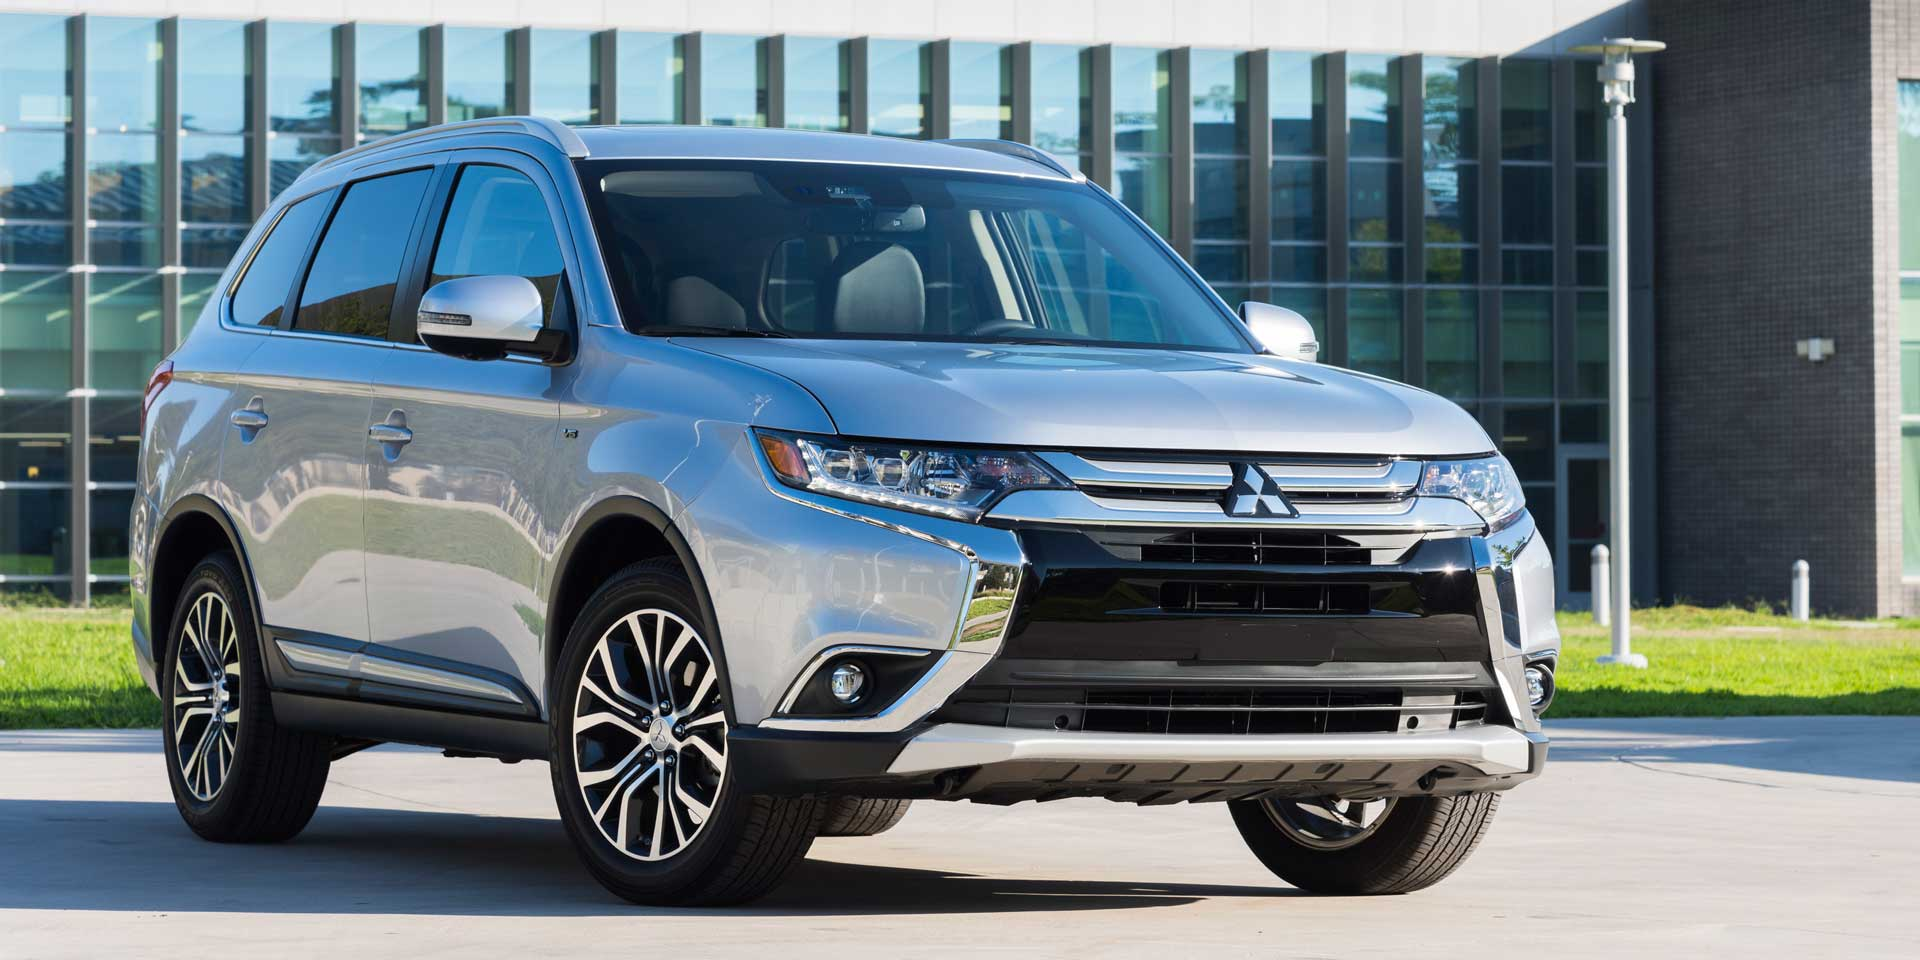 Used Cars For Sale New Cars For Sale Car Dealers Cars Chicago - Mitsubishi local dealers